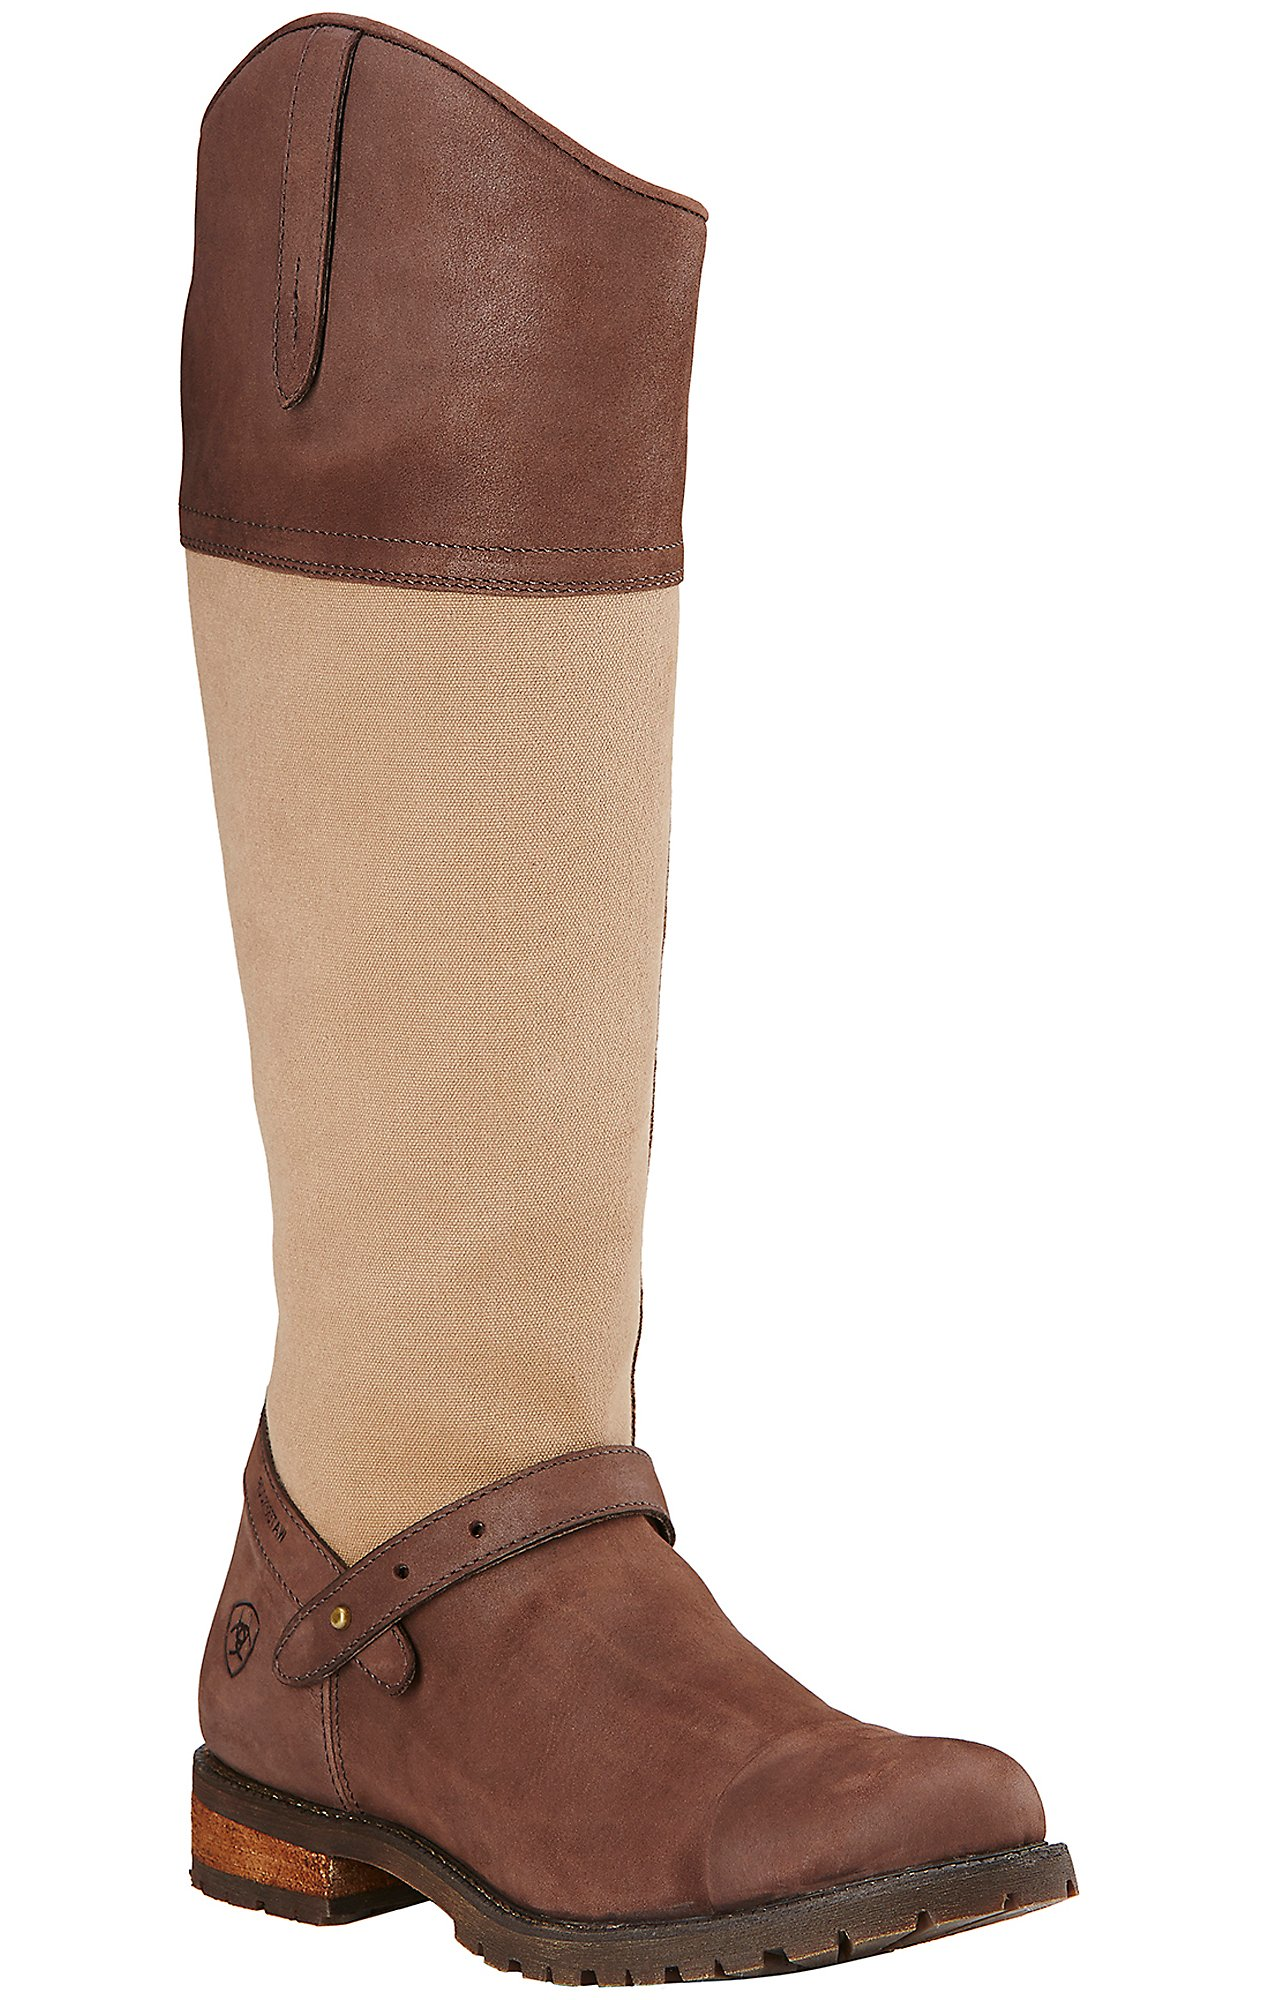 Wool Upper Round Toe Boots